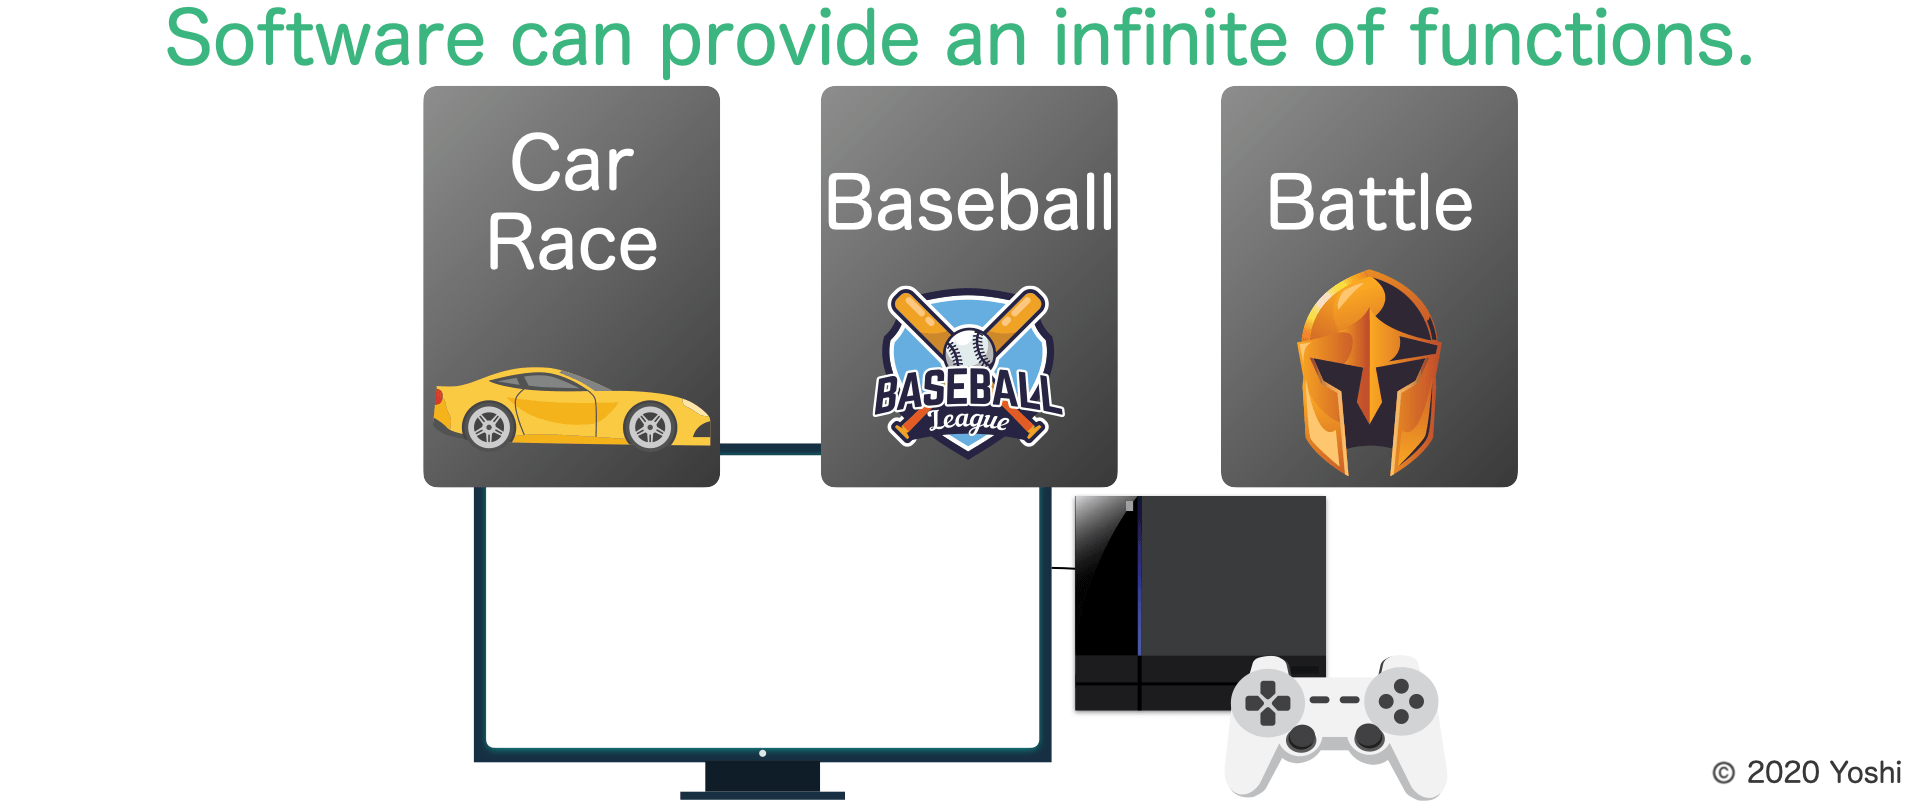 software can provide infinite functions